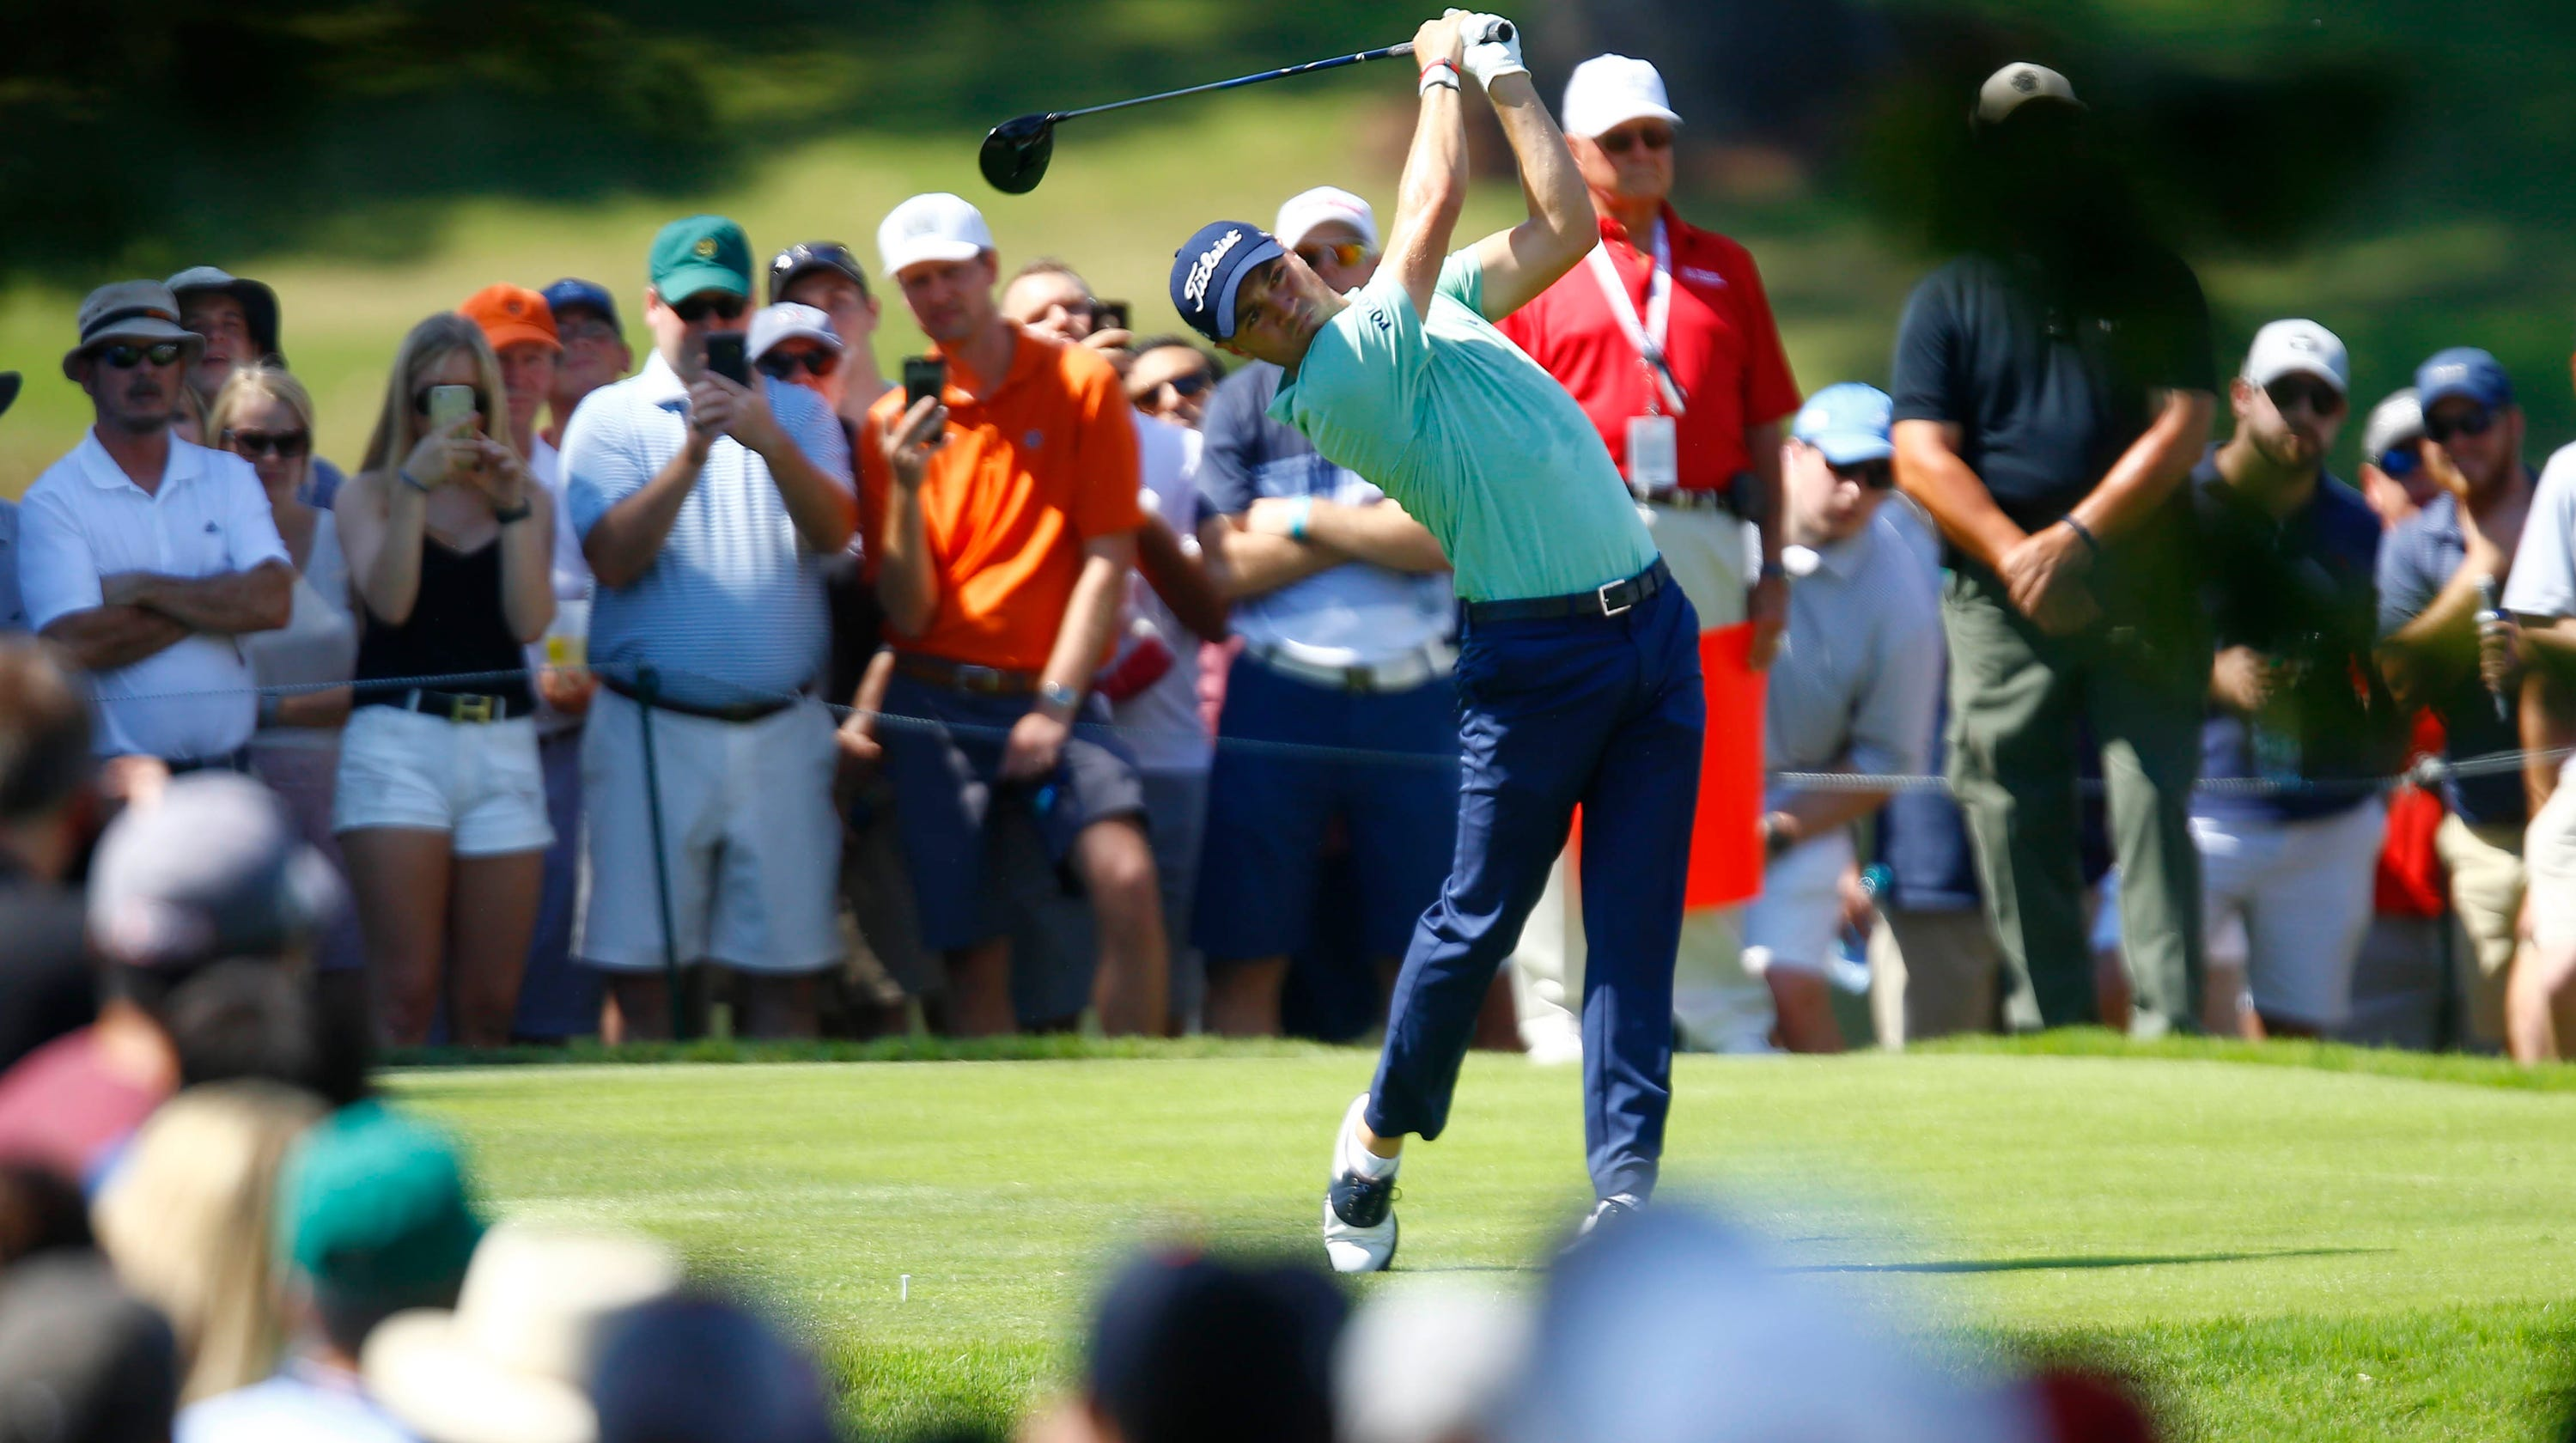 Rookies can provide a spark at Ryder Cup, but sometimes inexperience can hurt